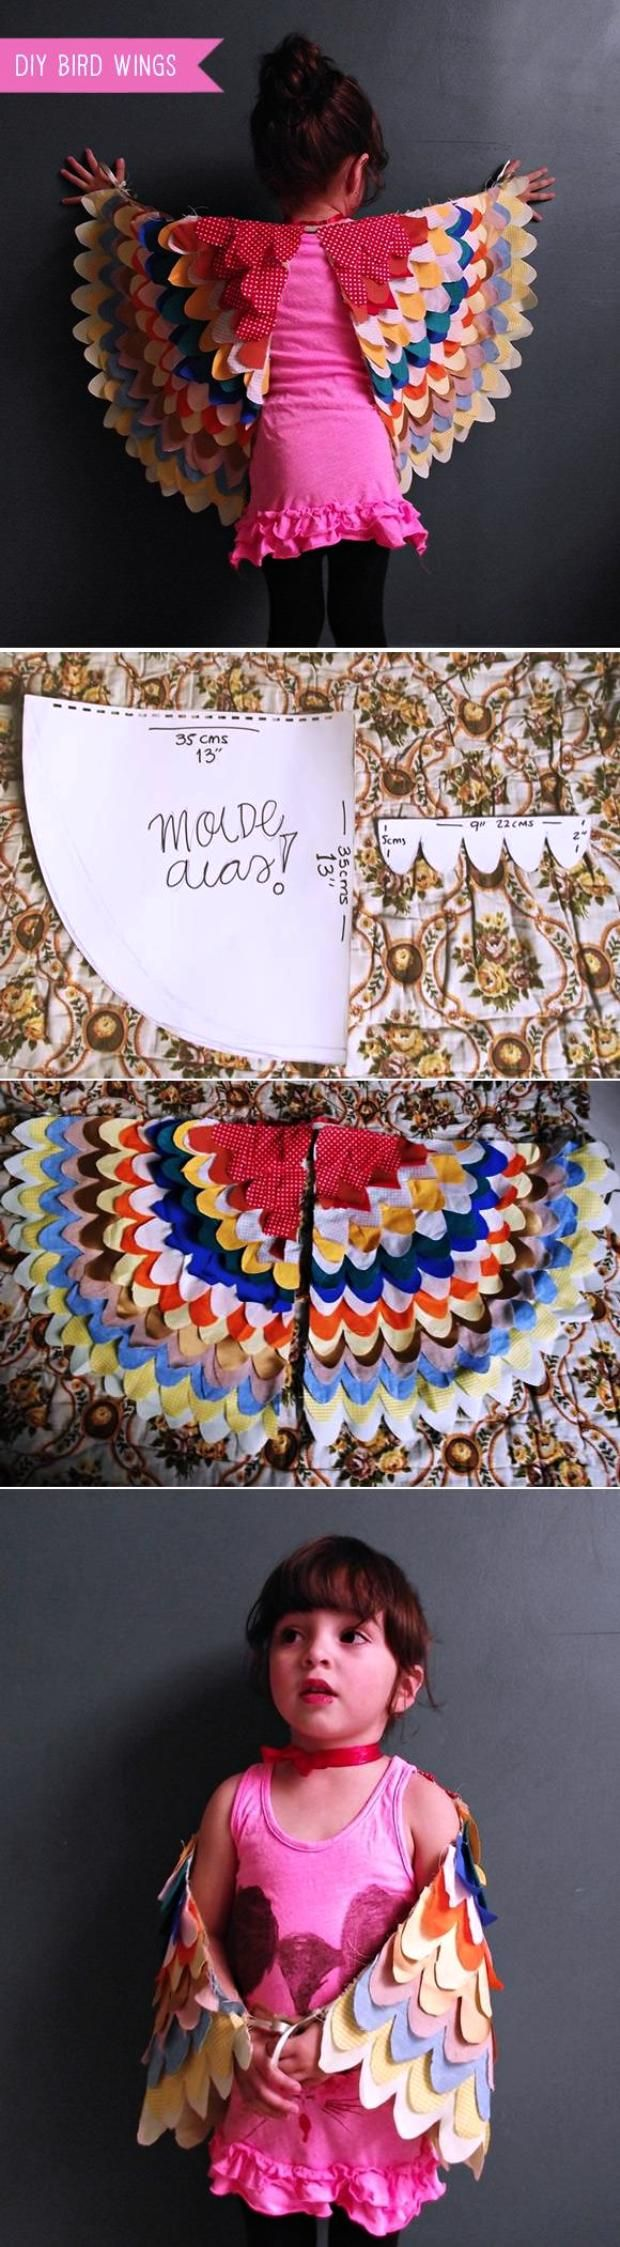 colorful DIY bird costume, wings inspiration